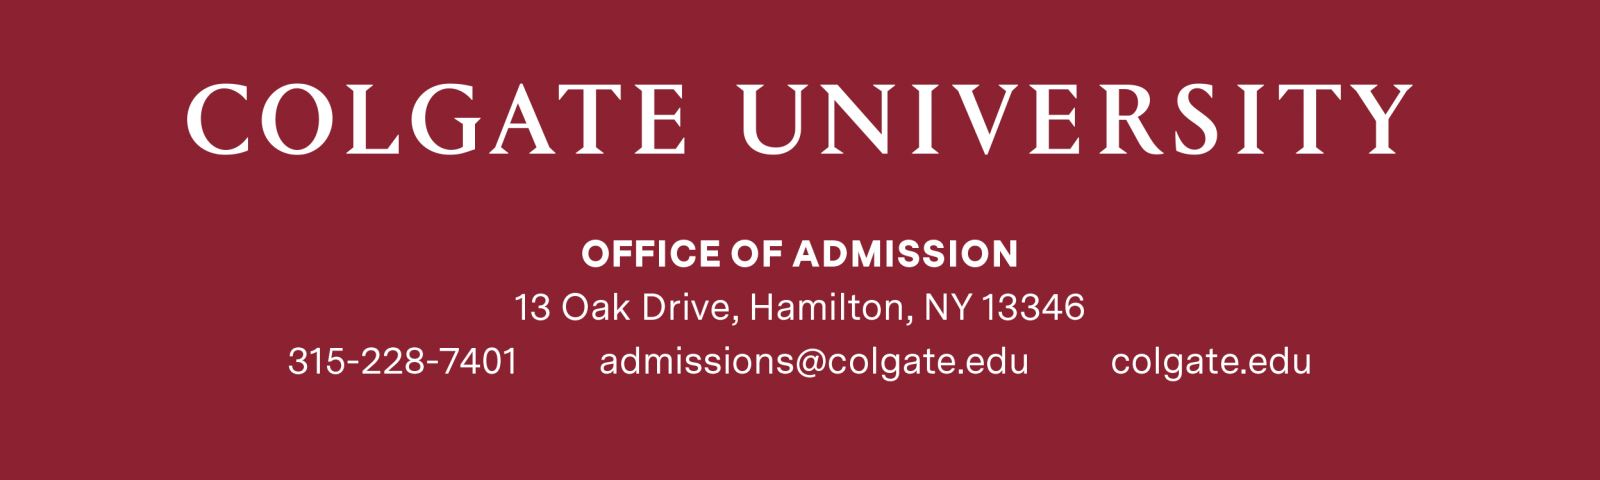 Colgate University footer and social icons